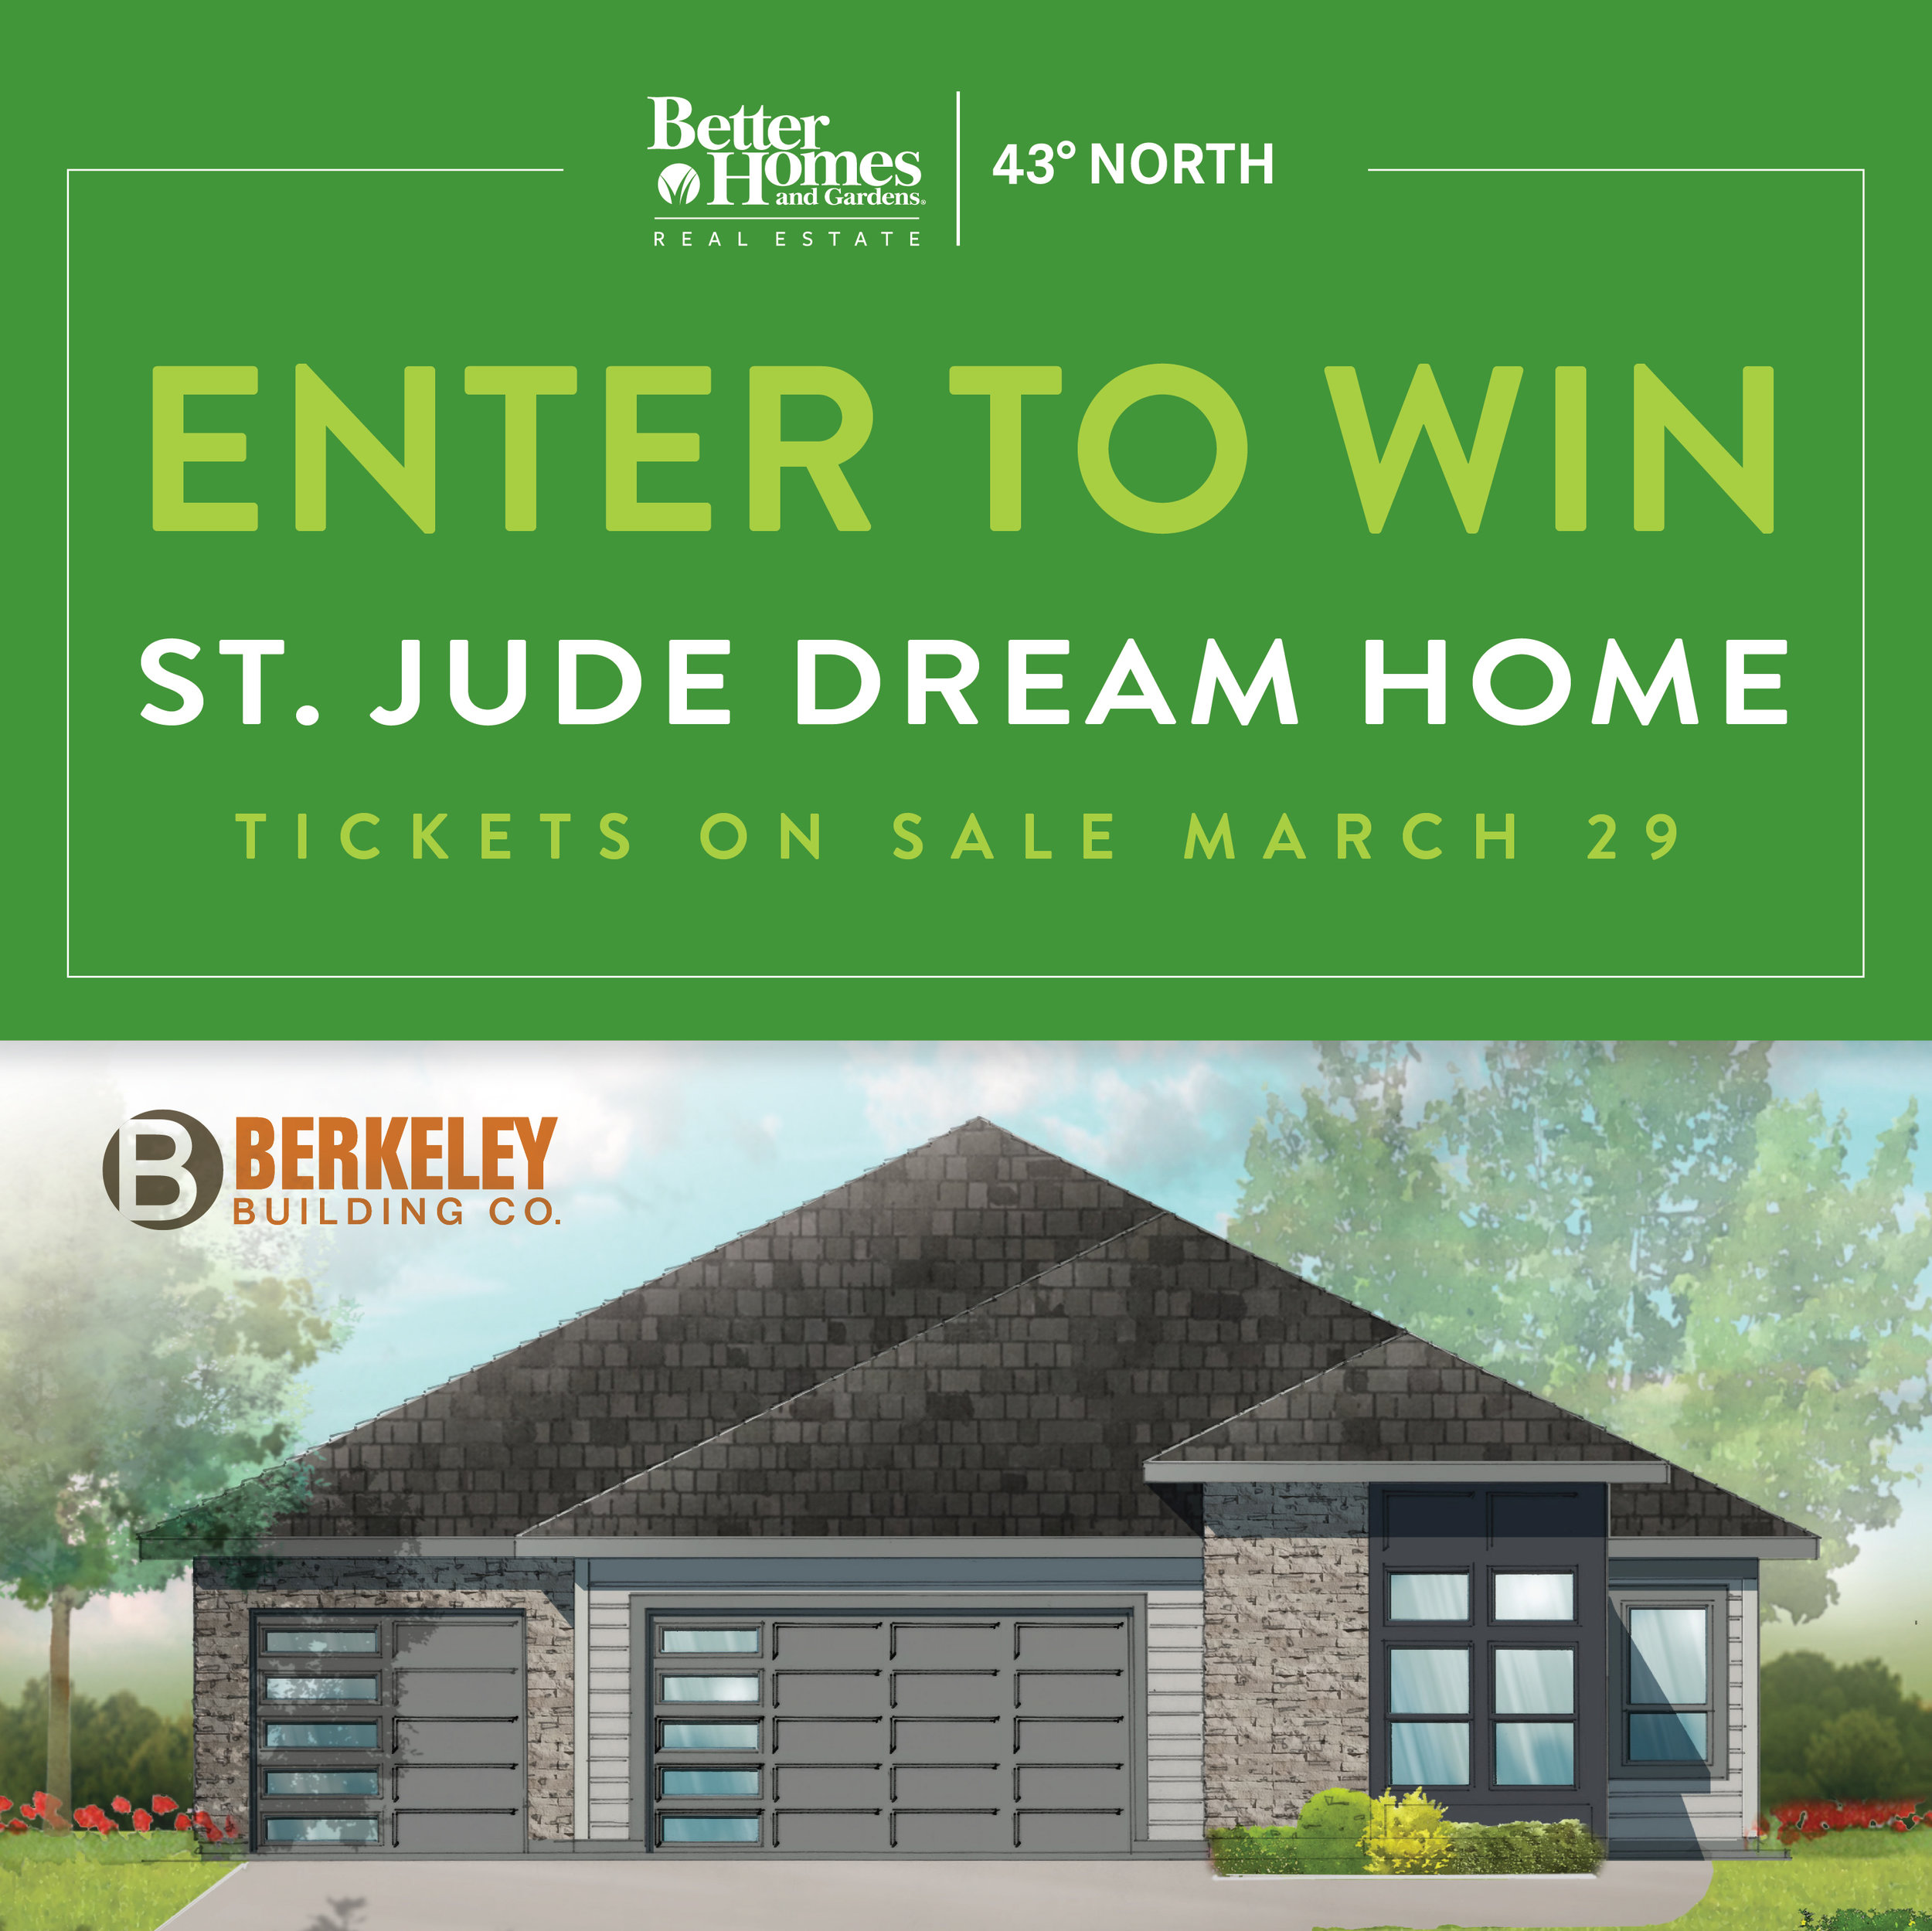 The 14th Annual St Jude Dream Home Giveaway Is Underway And Tickets Are Selling Fast Better Homes And Gardens Real Estate 43 North